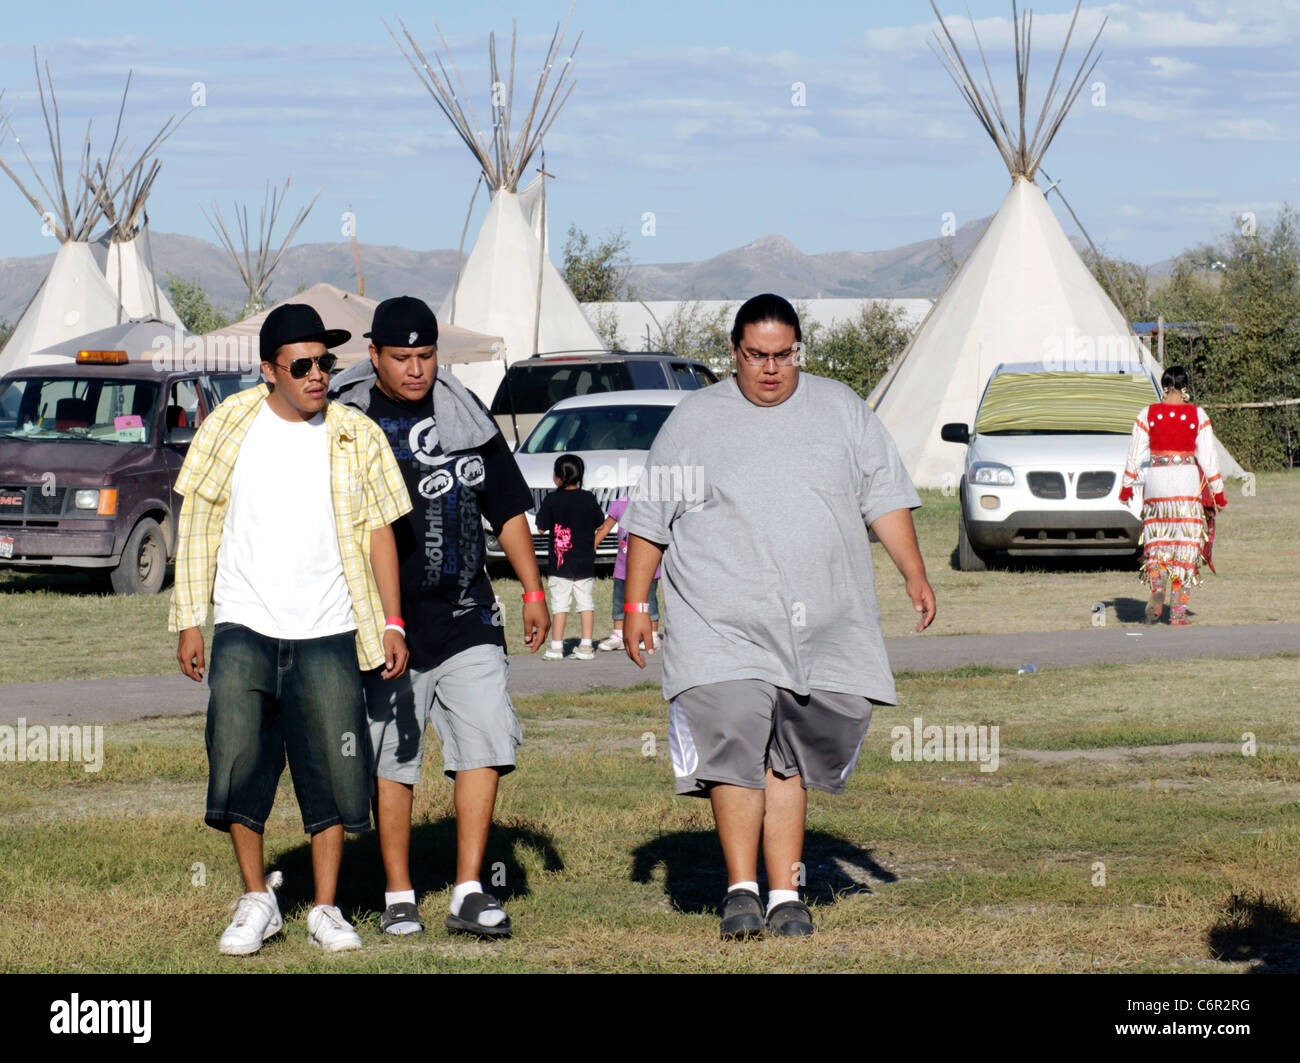 Native Americans at the annual Shoshone-Bannock Festival held in Fort Hall, Idaho. - Stock Image